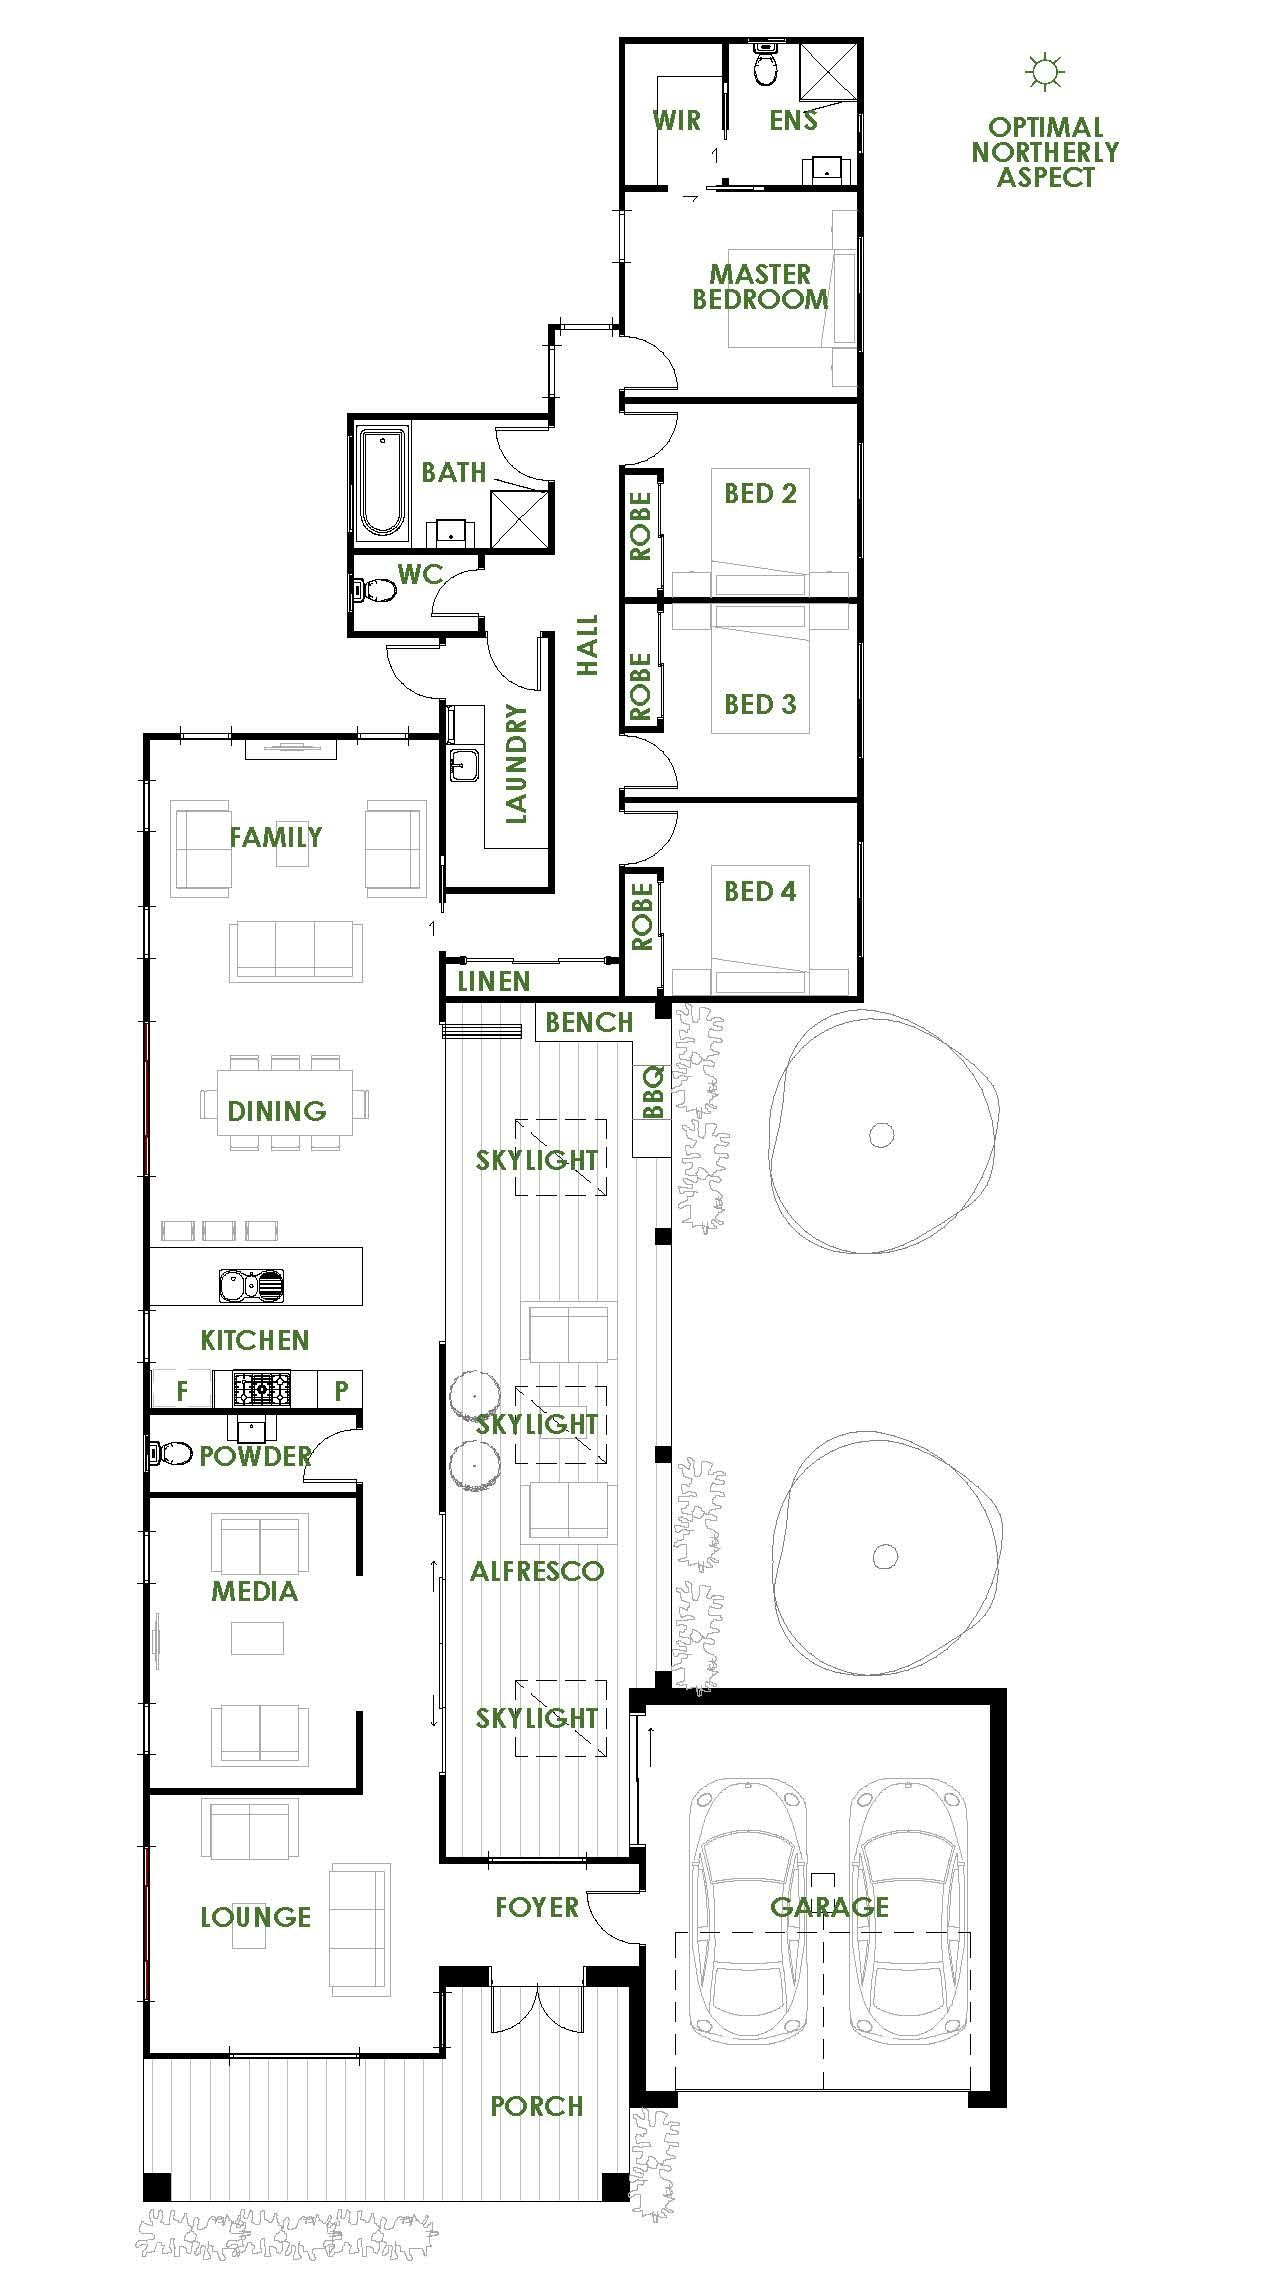 An Exclusive Architecturally Designed Home Created By Green Homes Australia The Stradbroke House Plans Australia Home Design Floor Plans L Shaped House Plans